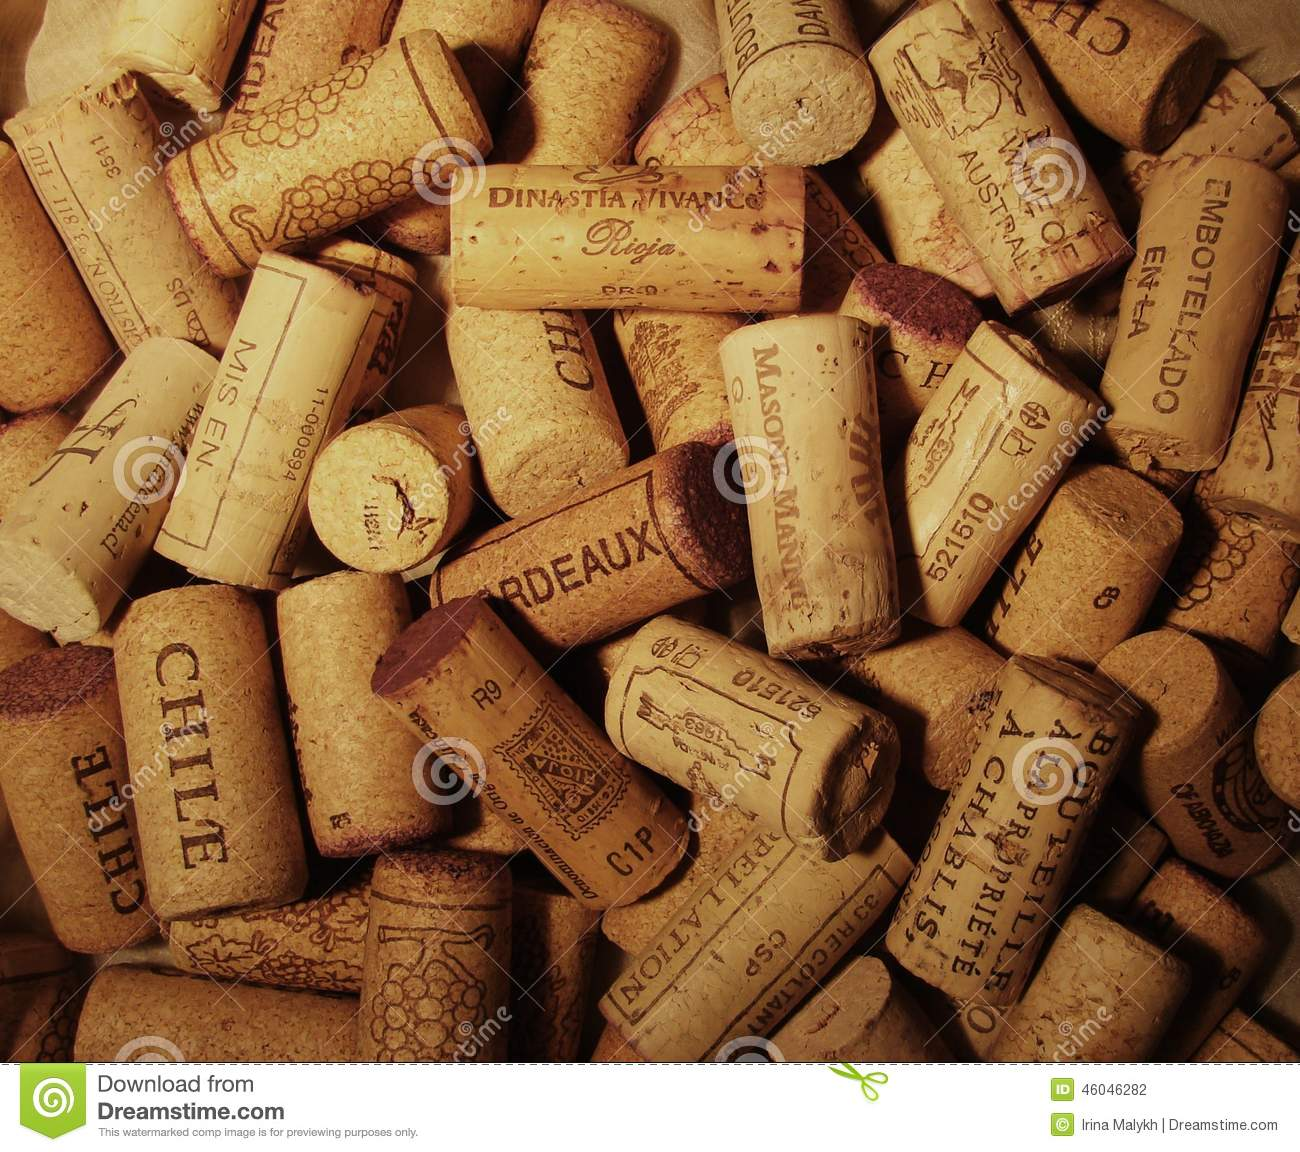 3d Wallpaper For Android Phone Free Download Download Wine Cork Wallpaper Gallery